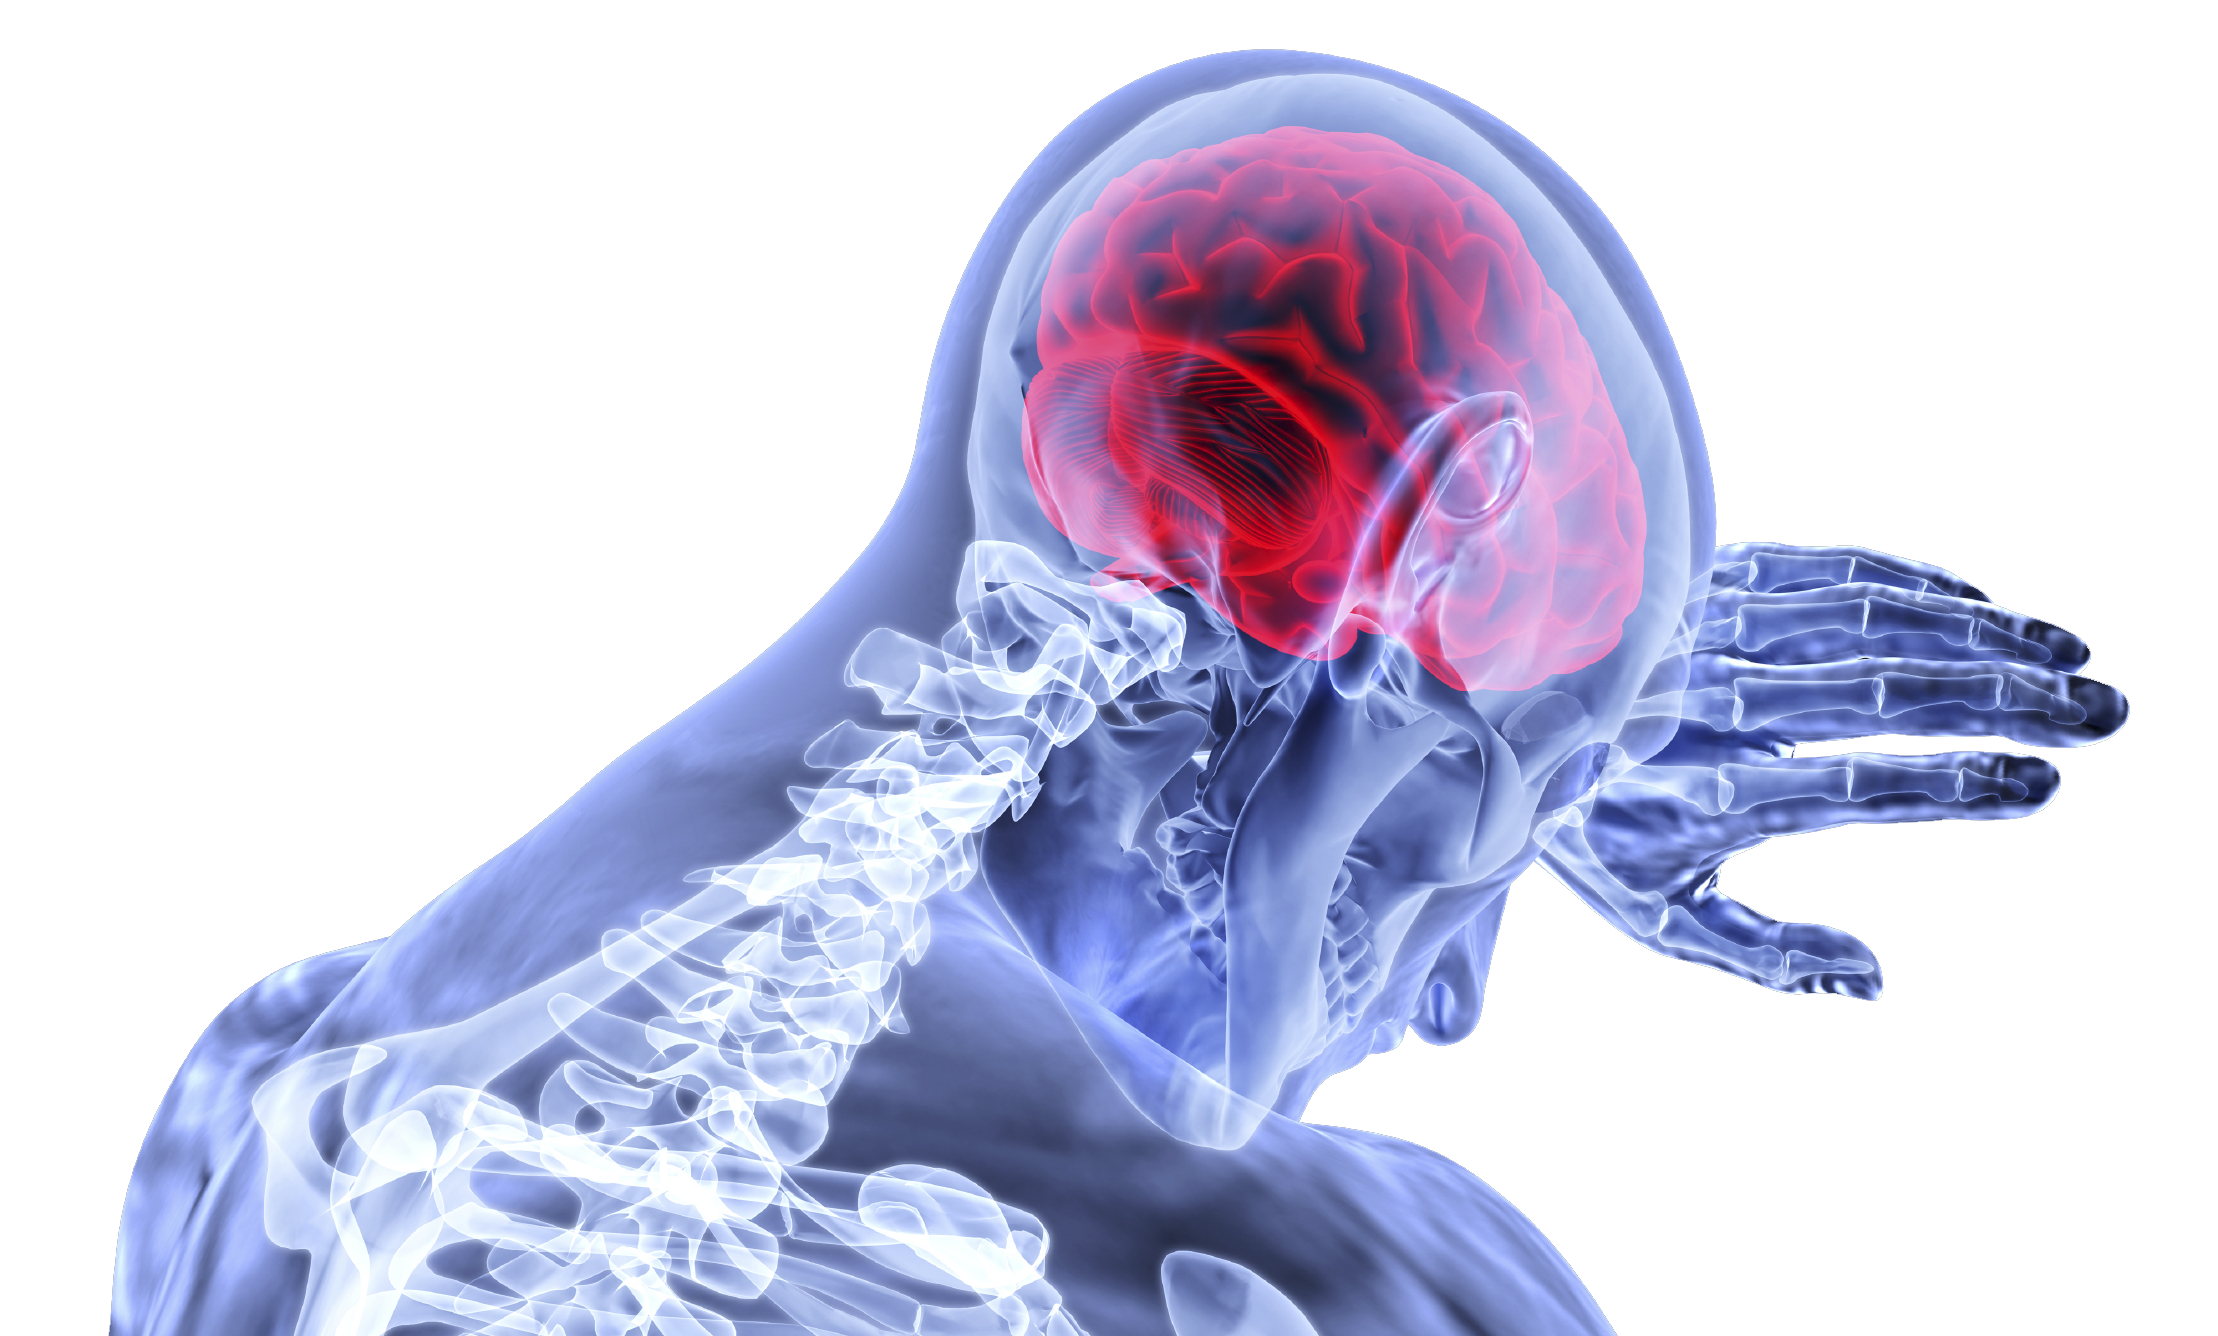 head injury png concussions after traumatic brain injury incidents virginia brain injury lawyer 2218png httppluspngcomipis png 2900html daily 10 httppluspngcomimg